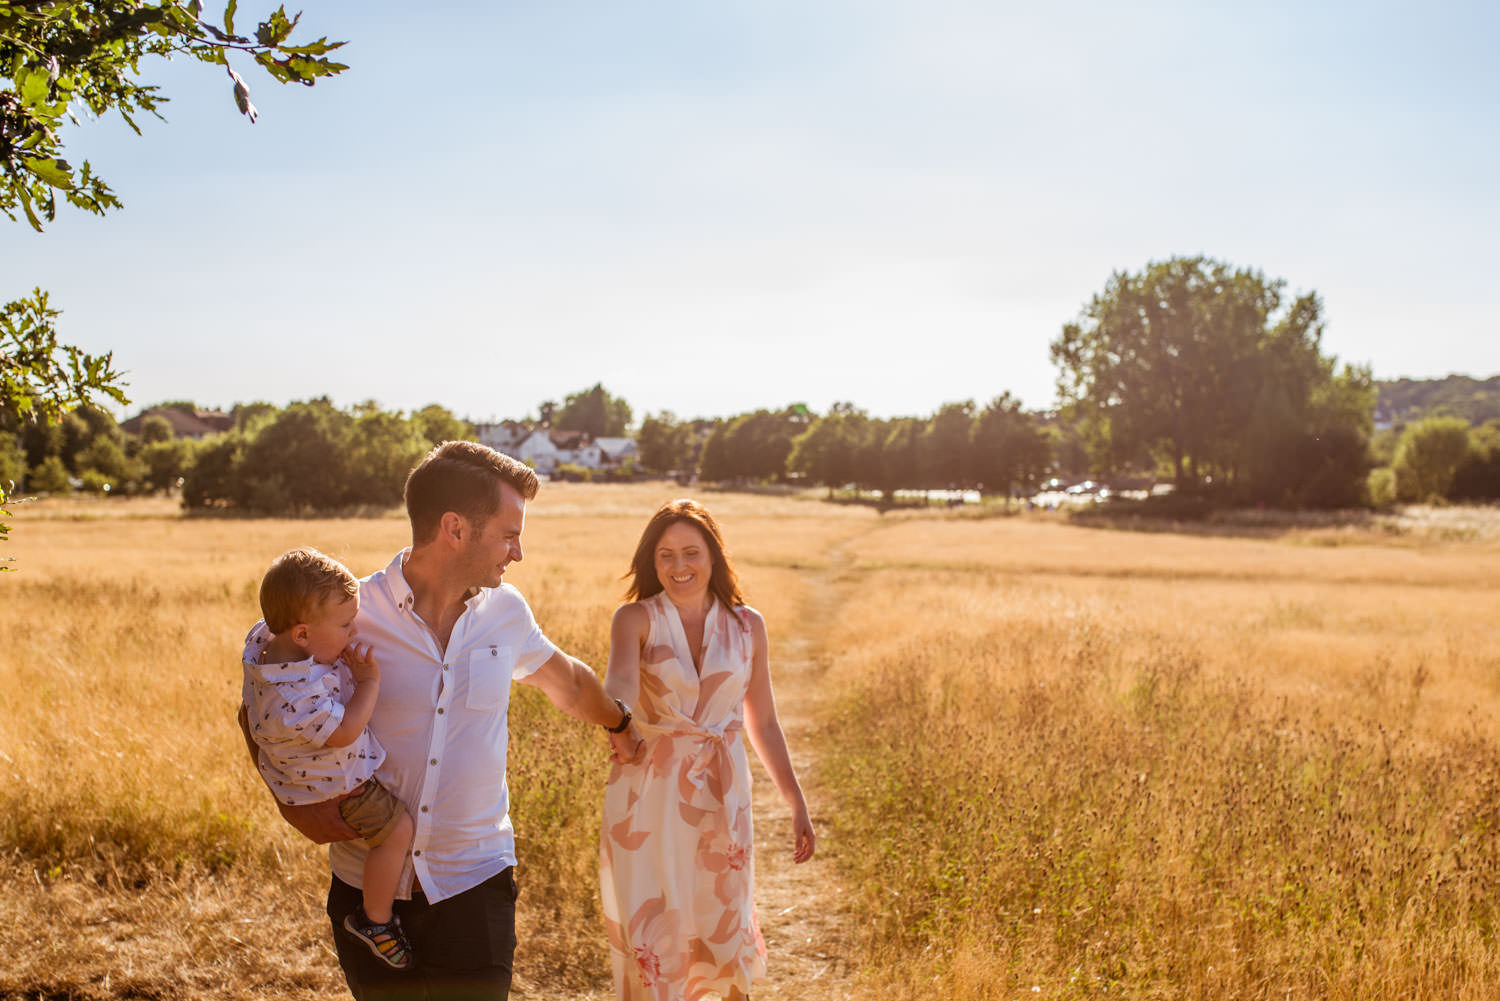 Outdoor Summer Family Photography Session